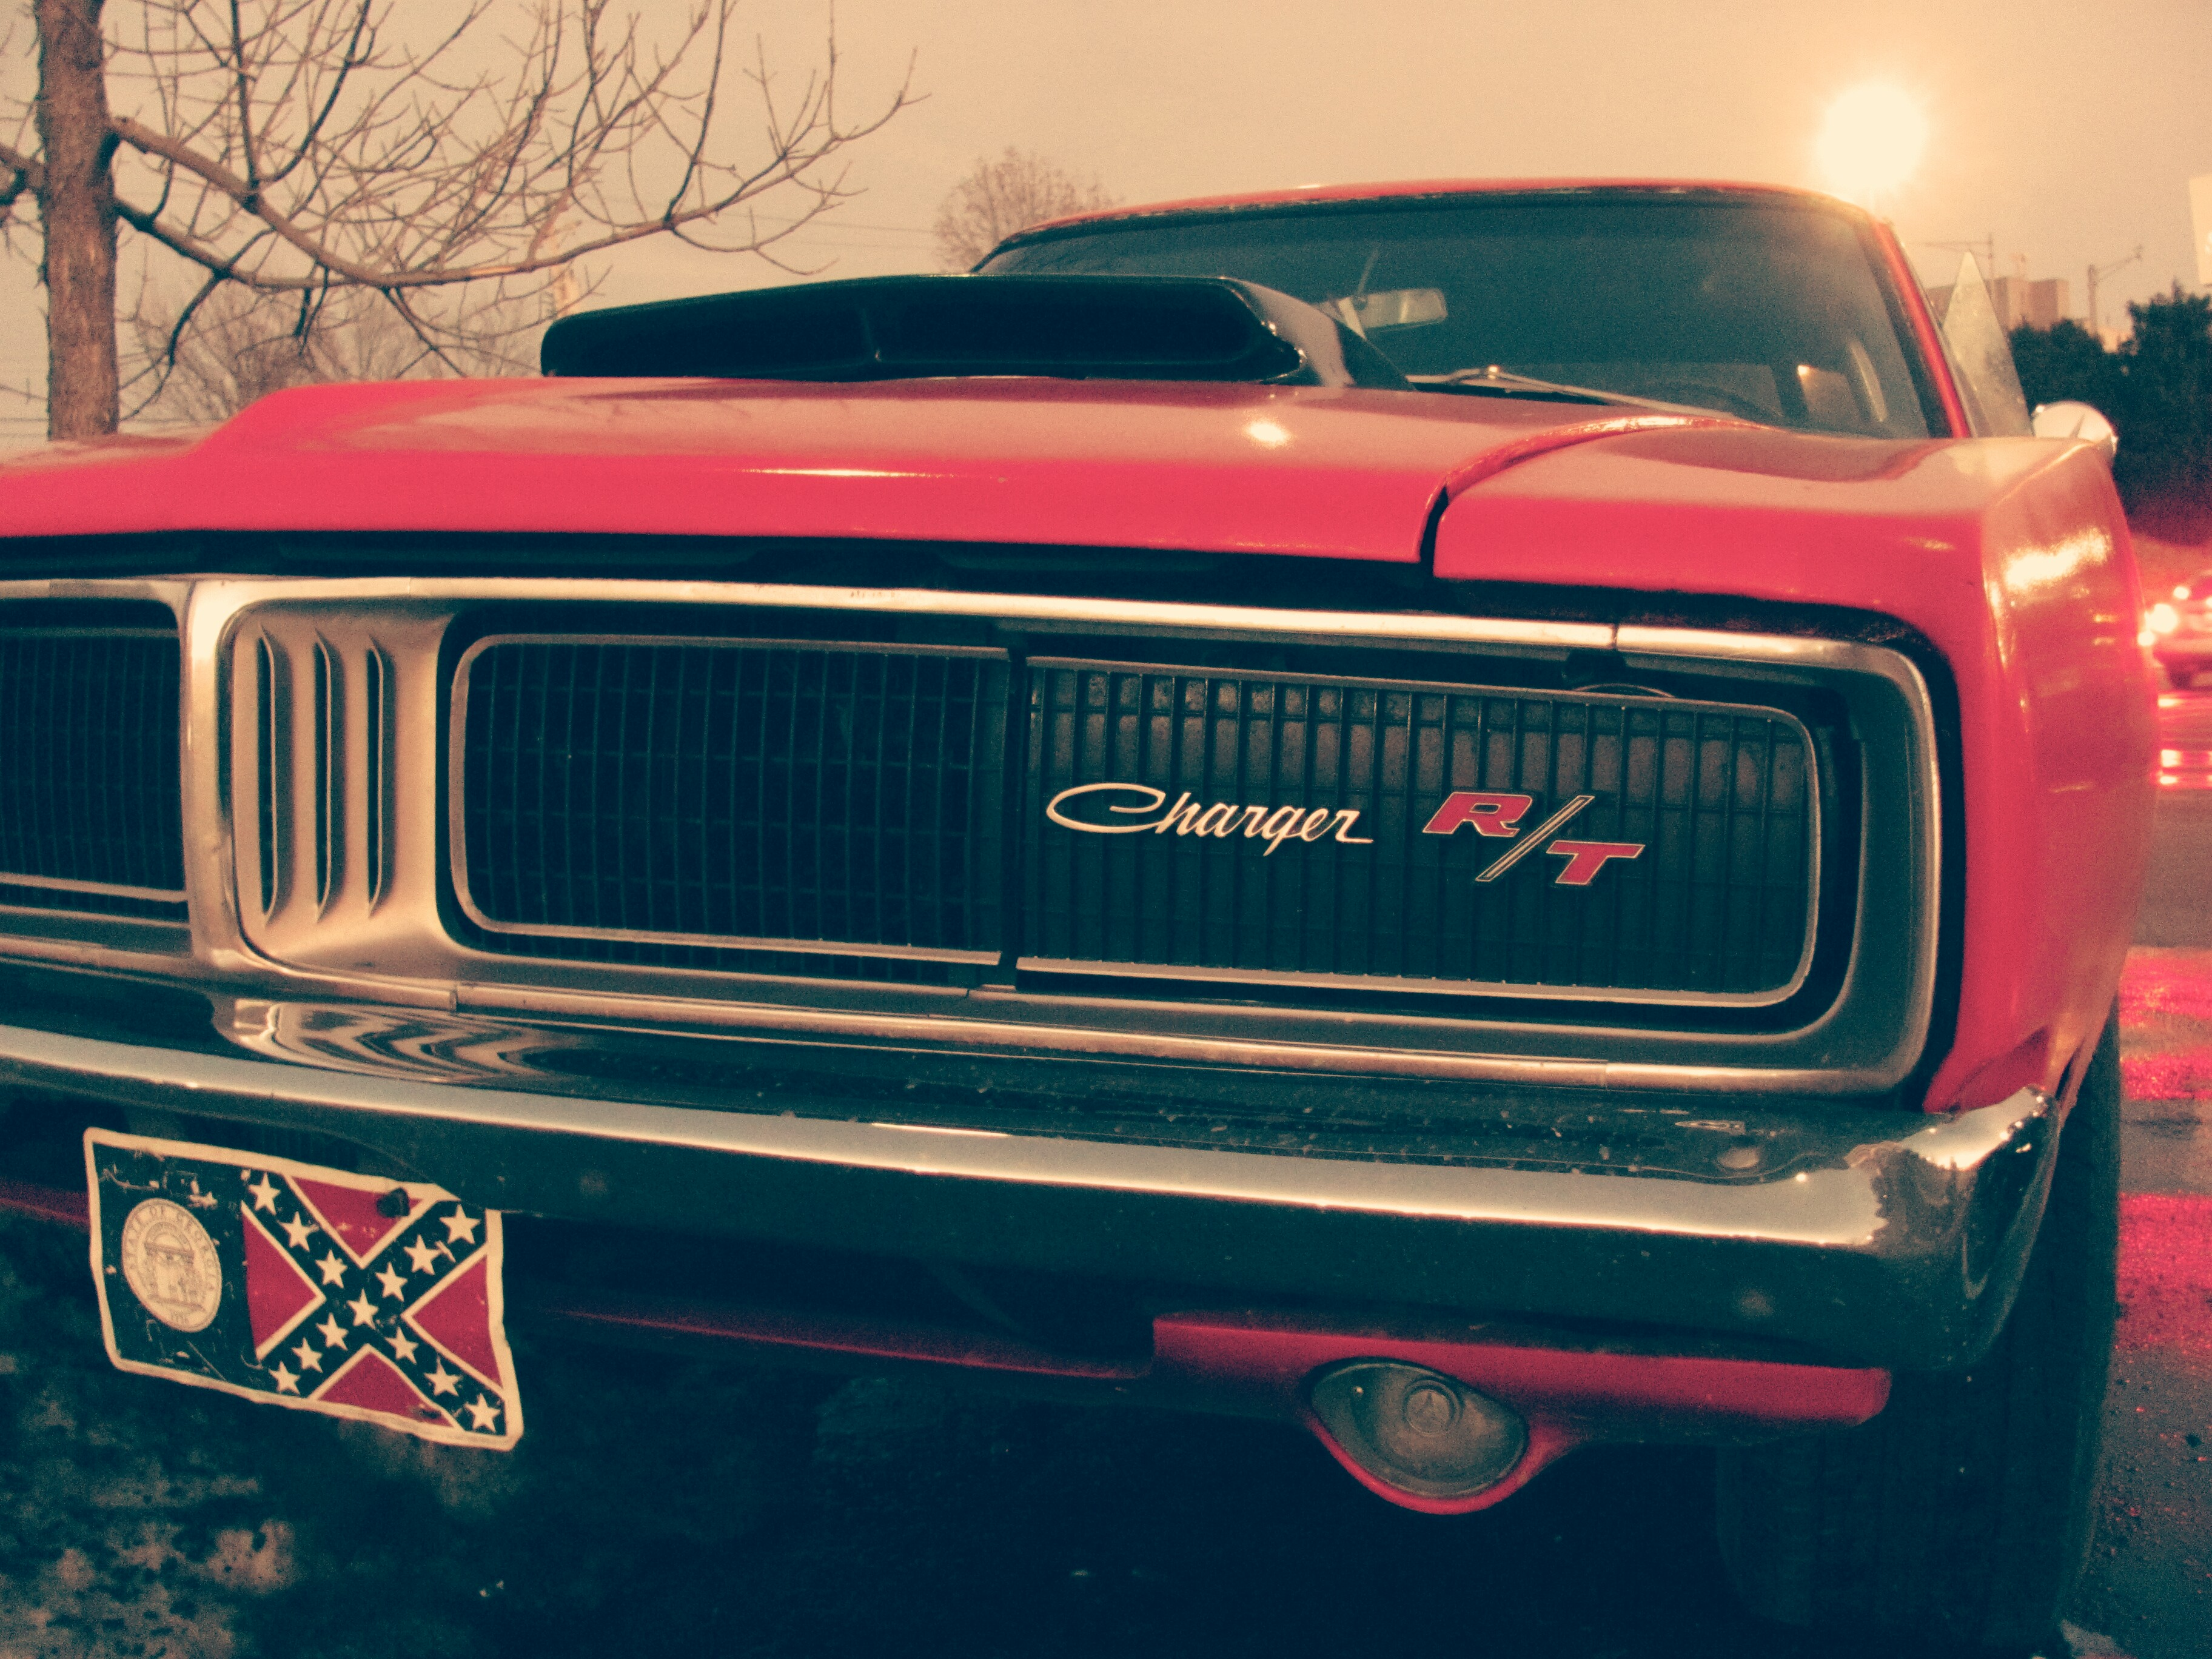 1969 dodge charger headlights wallpaper - photo #3